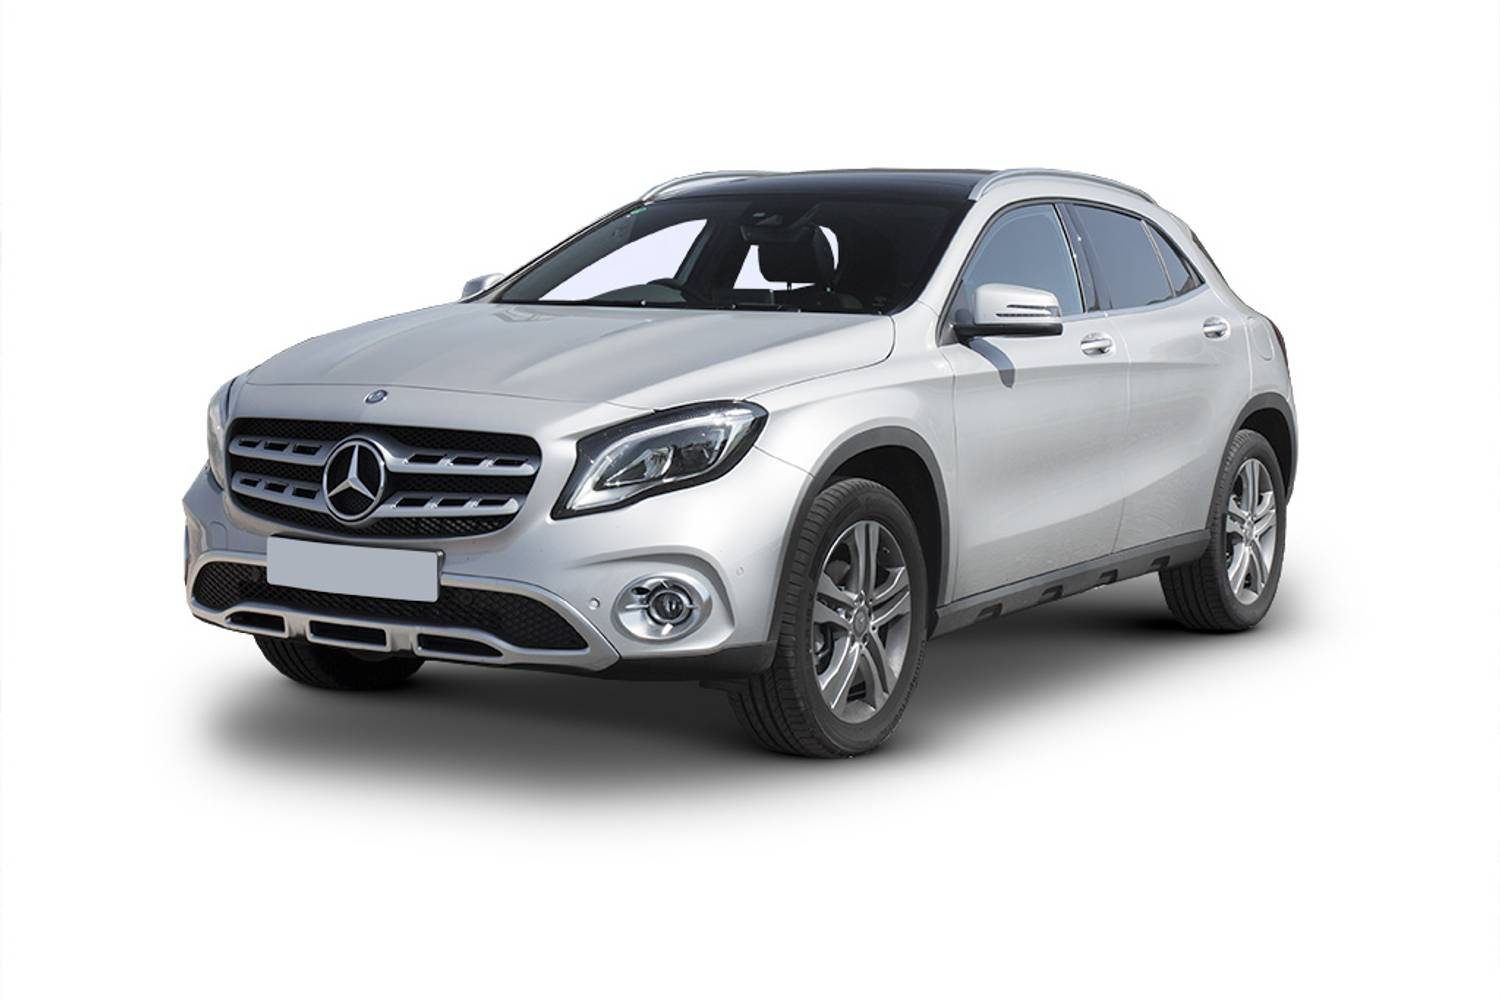 New mercedes benz gla class amg hatchback special edition for Mercedes benz gla for sale